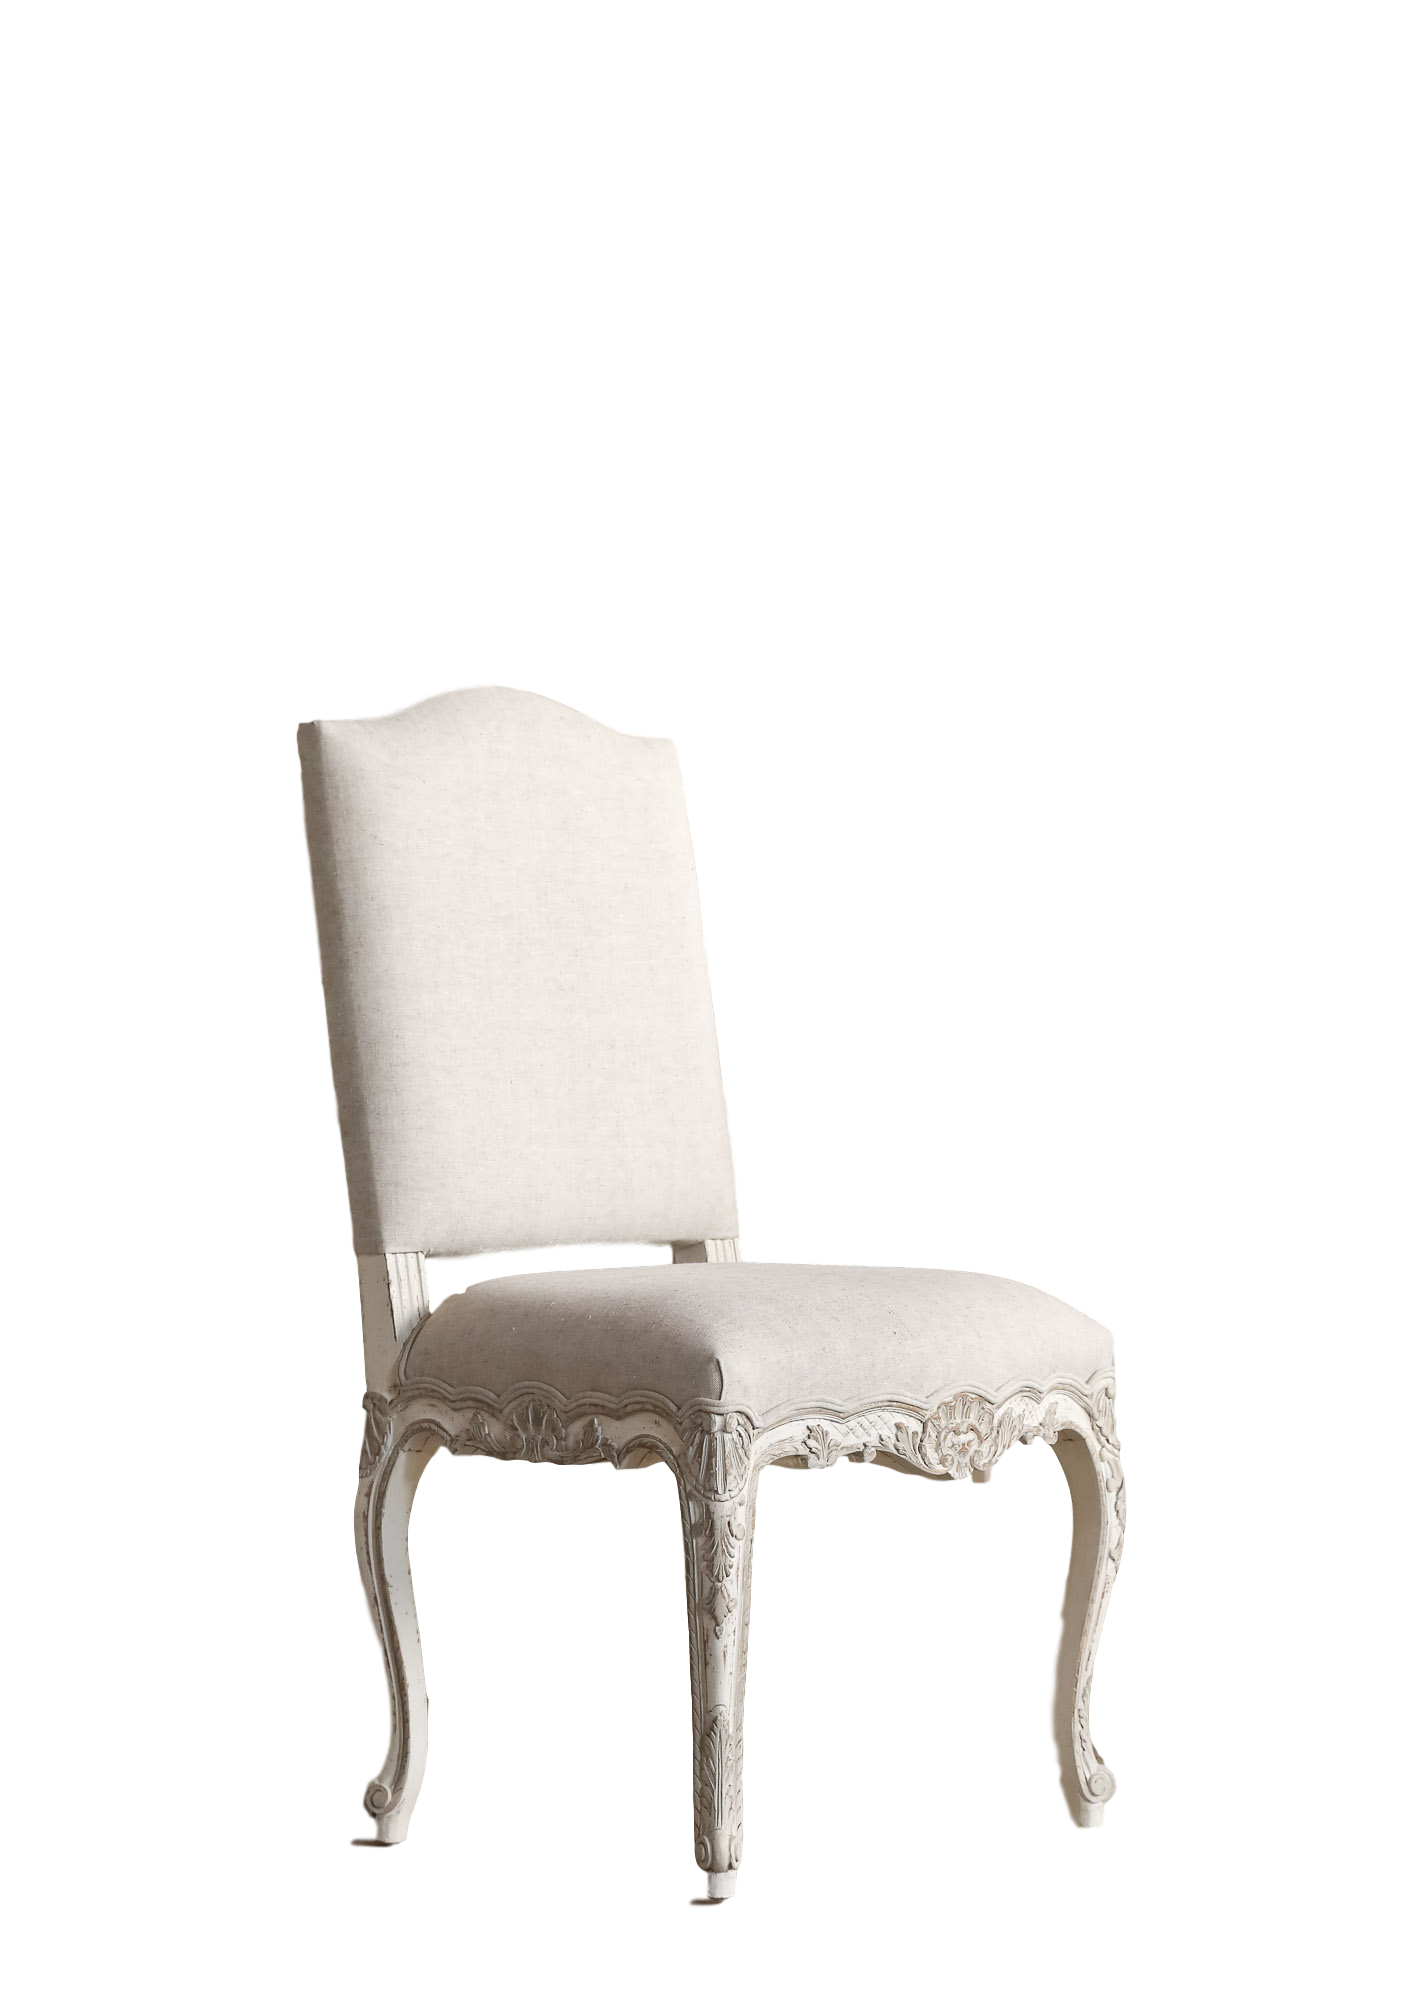 42H X 21W 22D Provence Dining Chair In Lightly Distressed Gesso And Oyster Highlight Finish